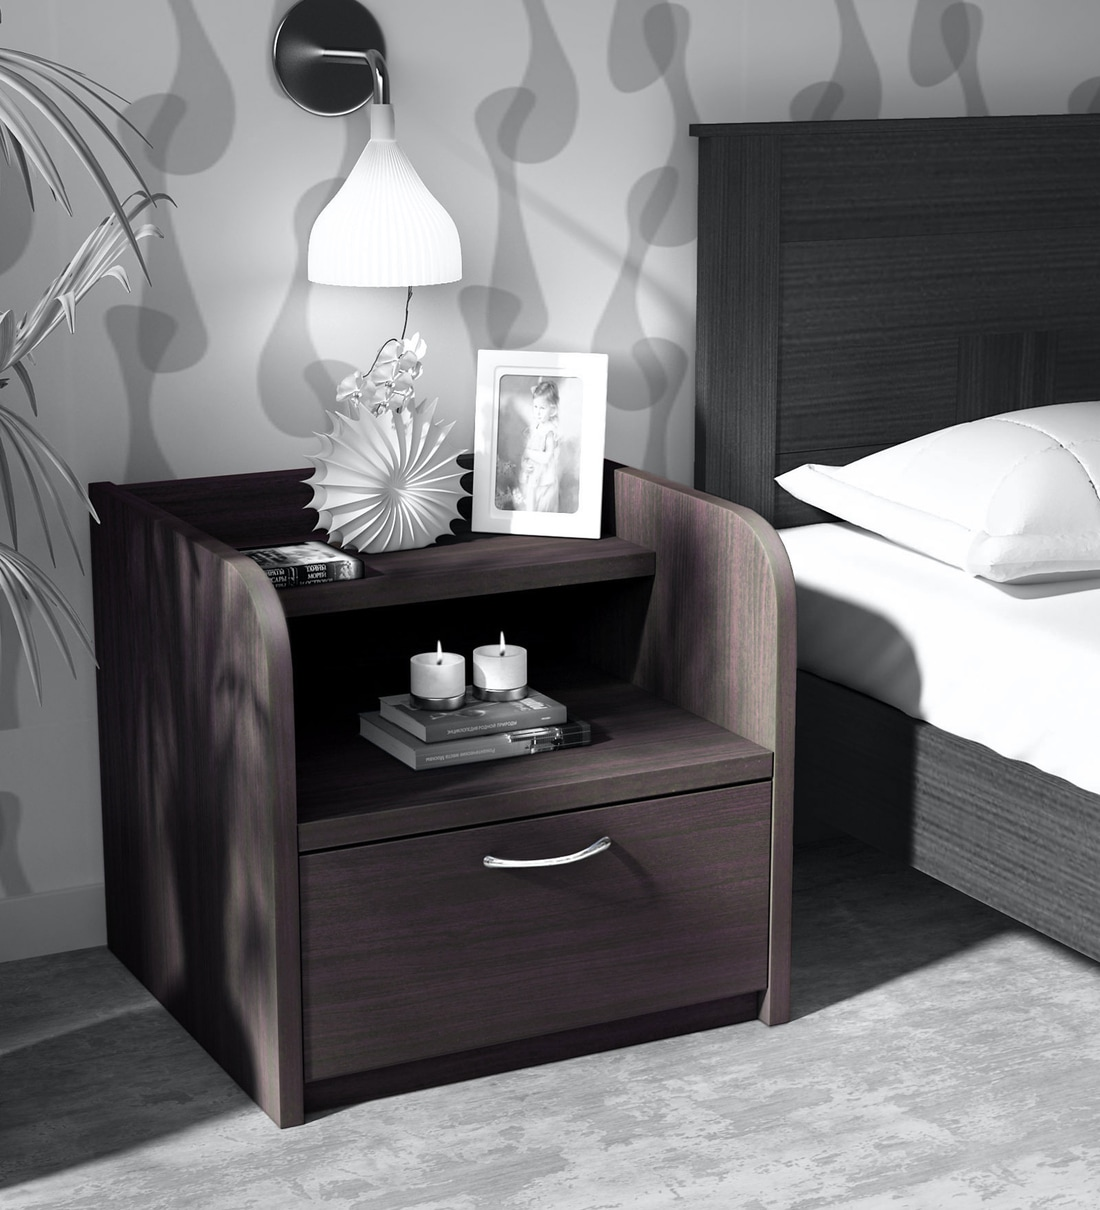 Buy Shinju Bed Side Table In Wenge Finish Mintwud By Pepperfry Online Modern Night Stands Tables Furniture Pepperfry Product